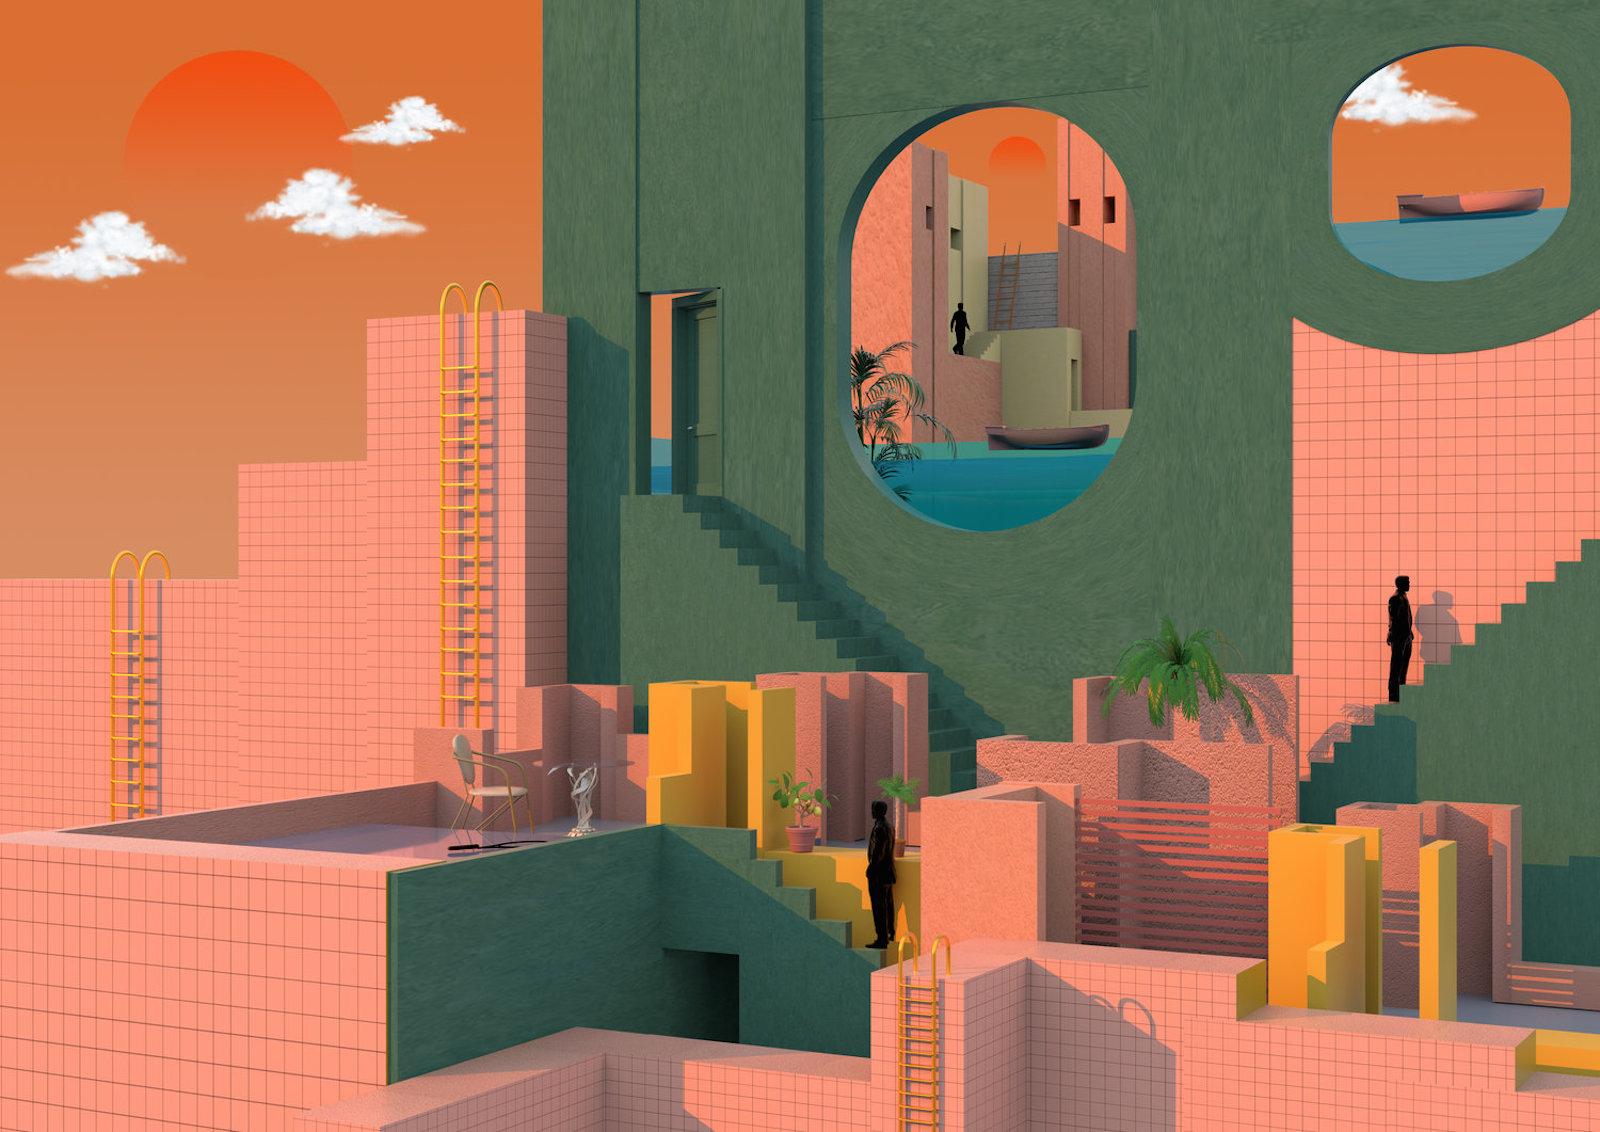 Architectual Illustrations Modernist 3d Illustrations By Tishk Barzanji Trendland